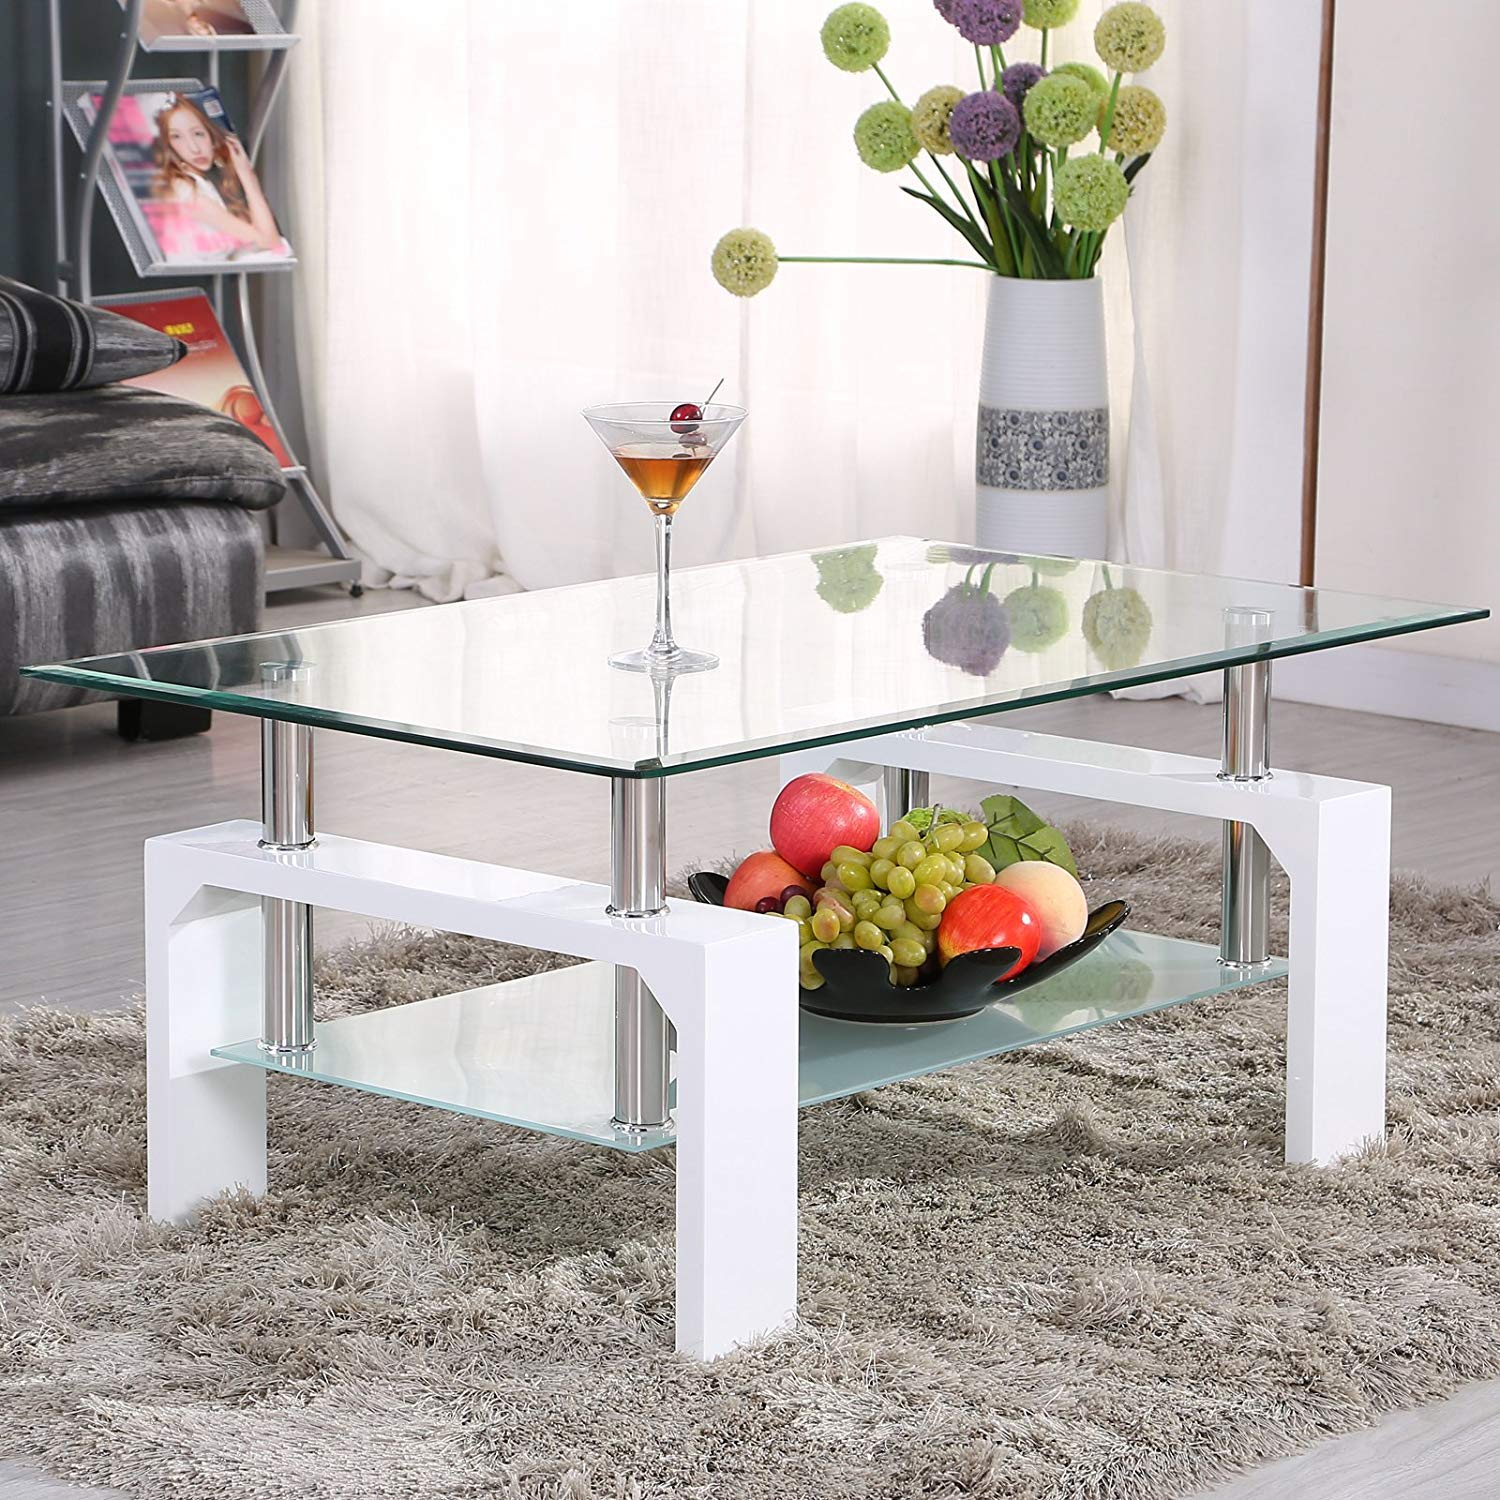 Mecor High Gloss White Rectangle Coffee Table, Modern Side/End Table with 1 Layer, Living Room Home Furniture